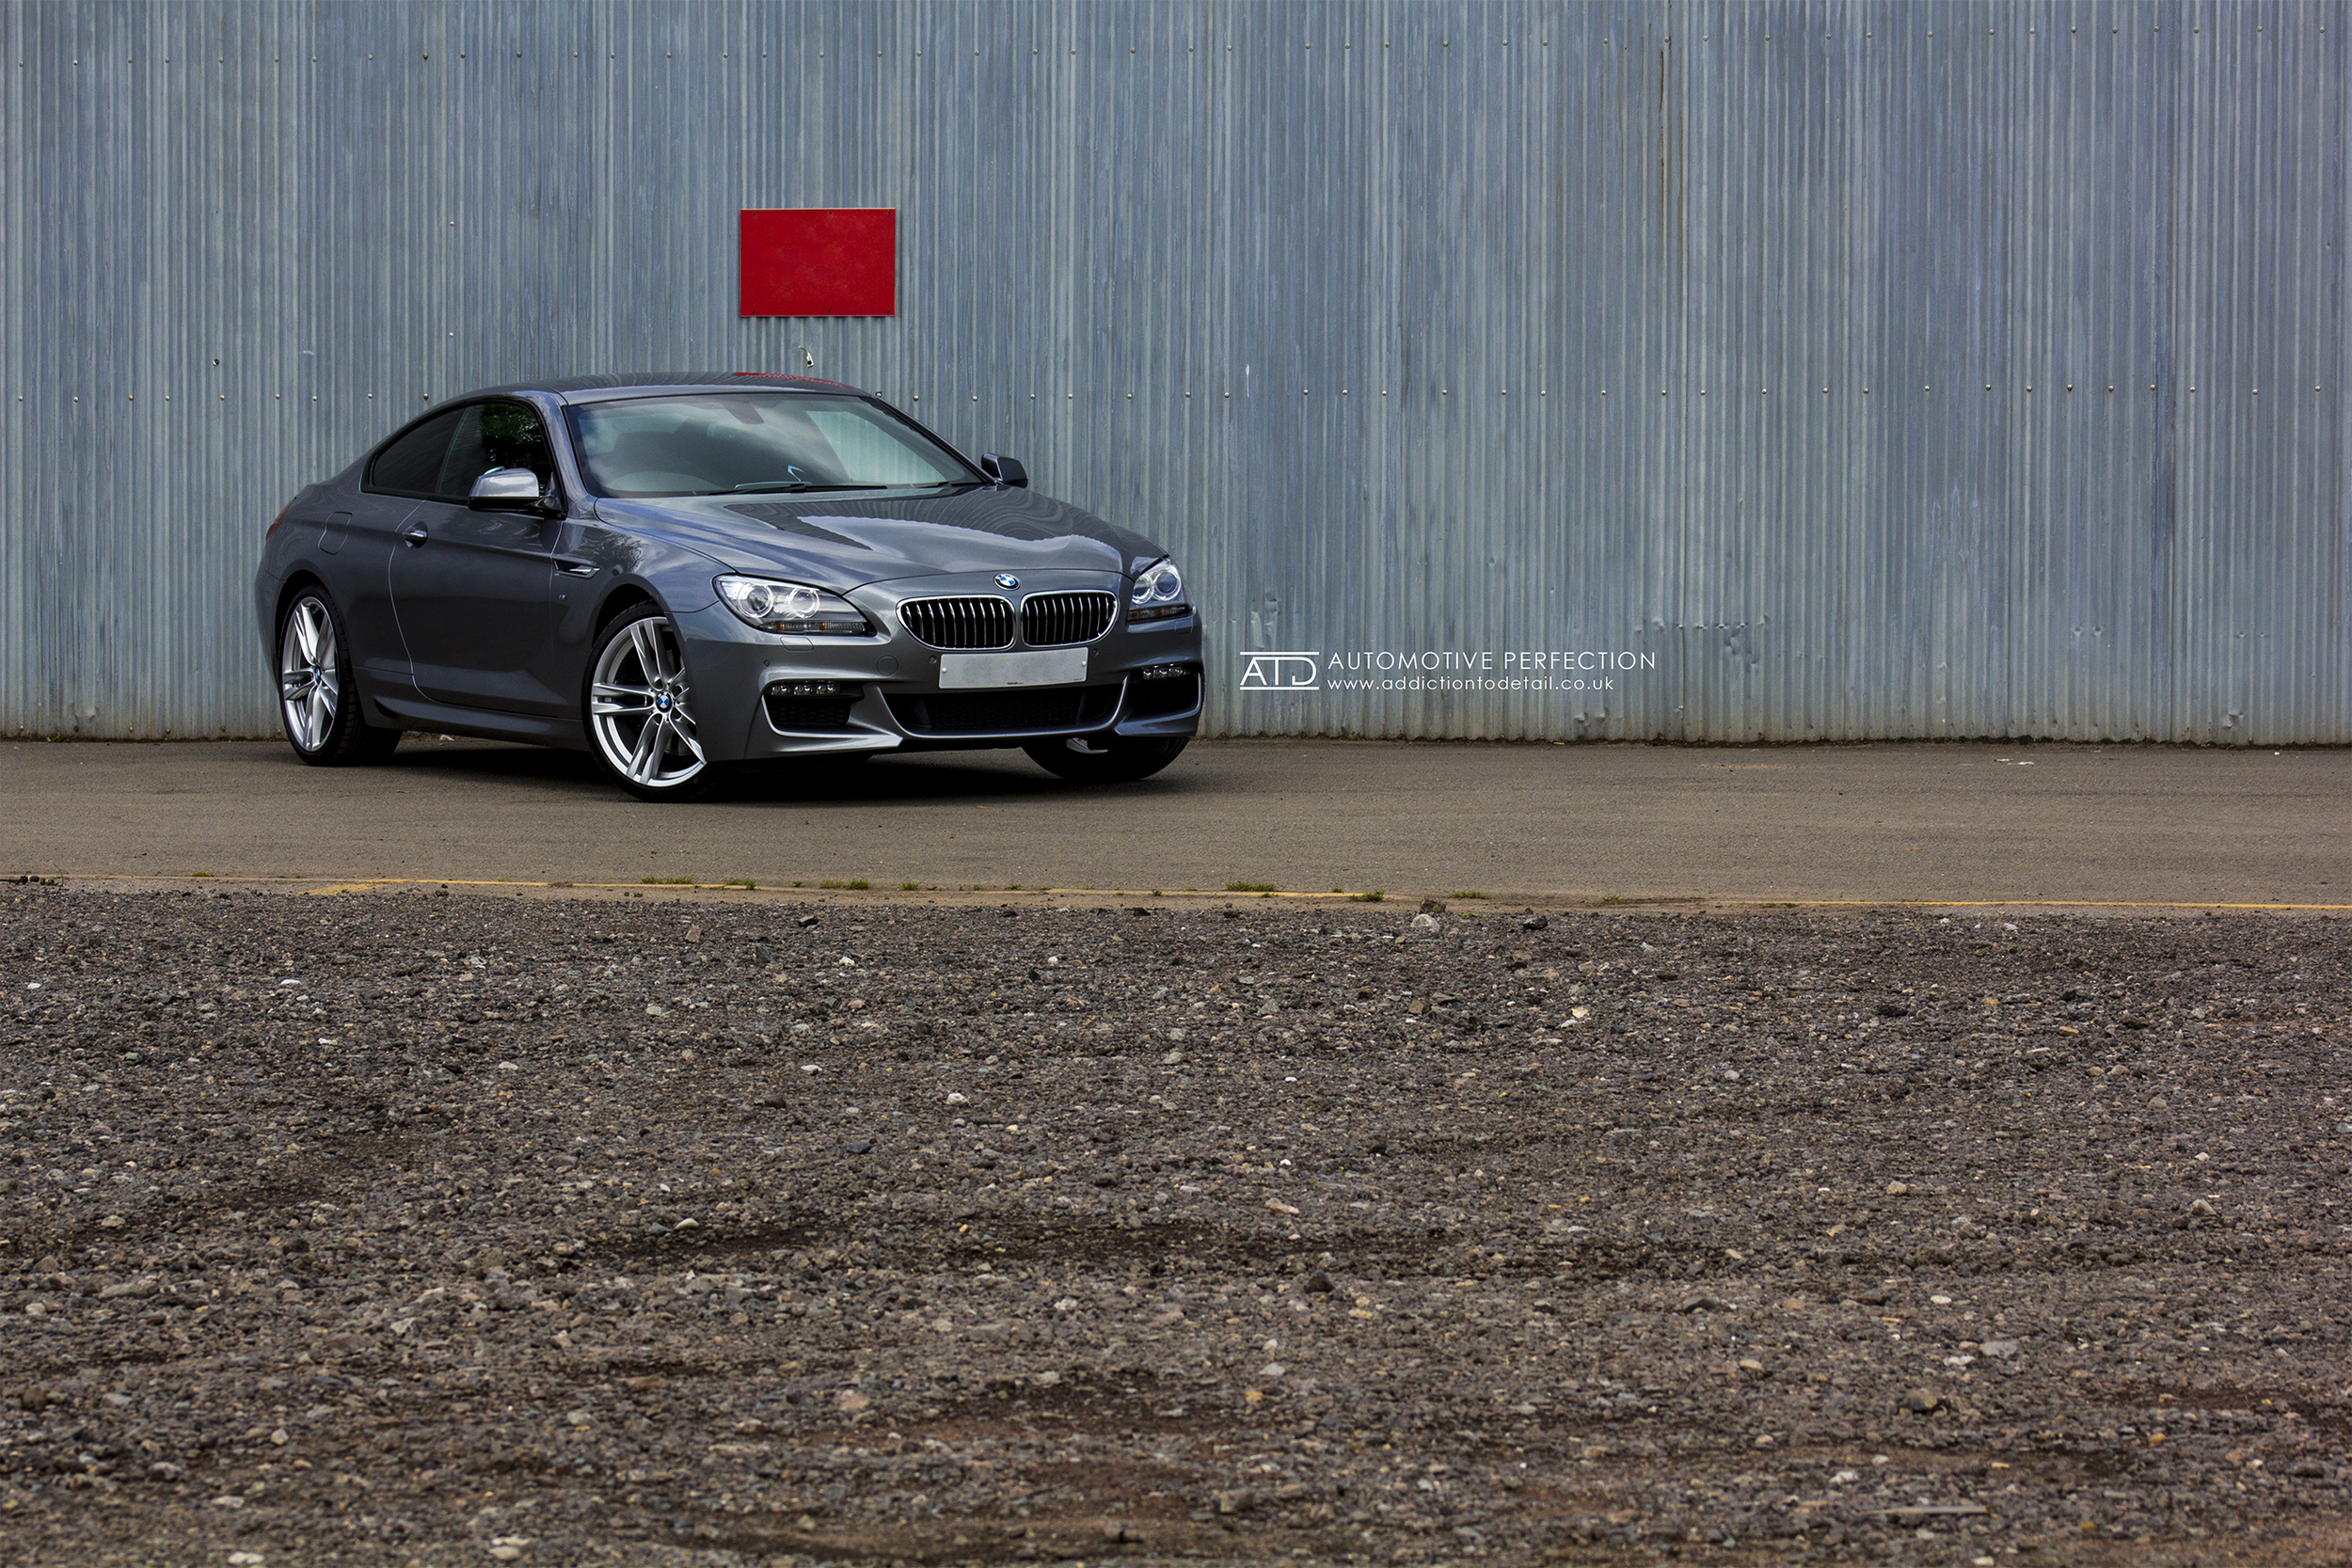 640D_Coupe_Photoshoot__0004_Image_030.jpg